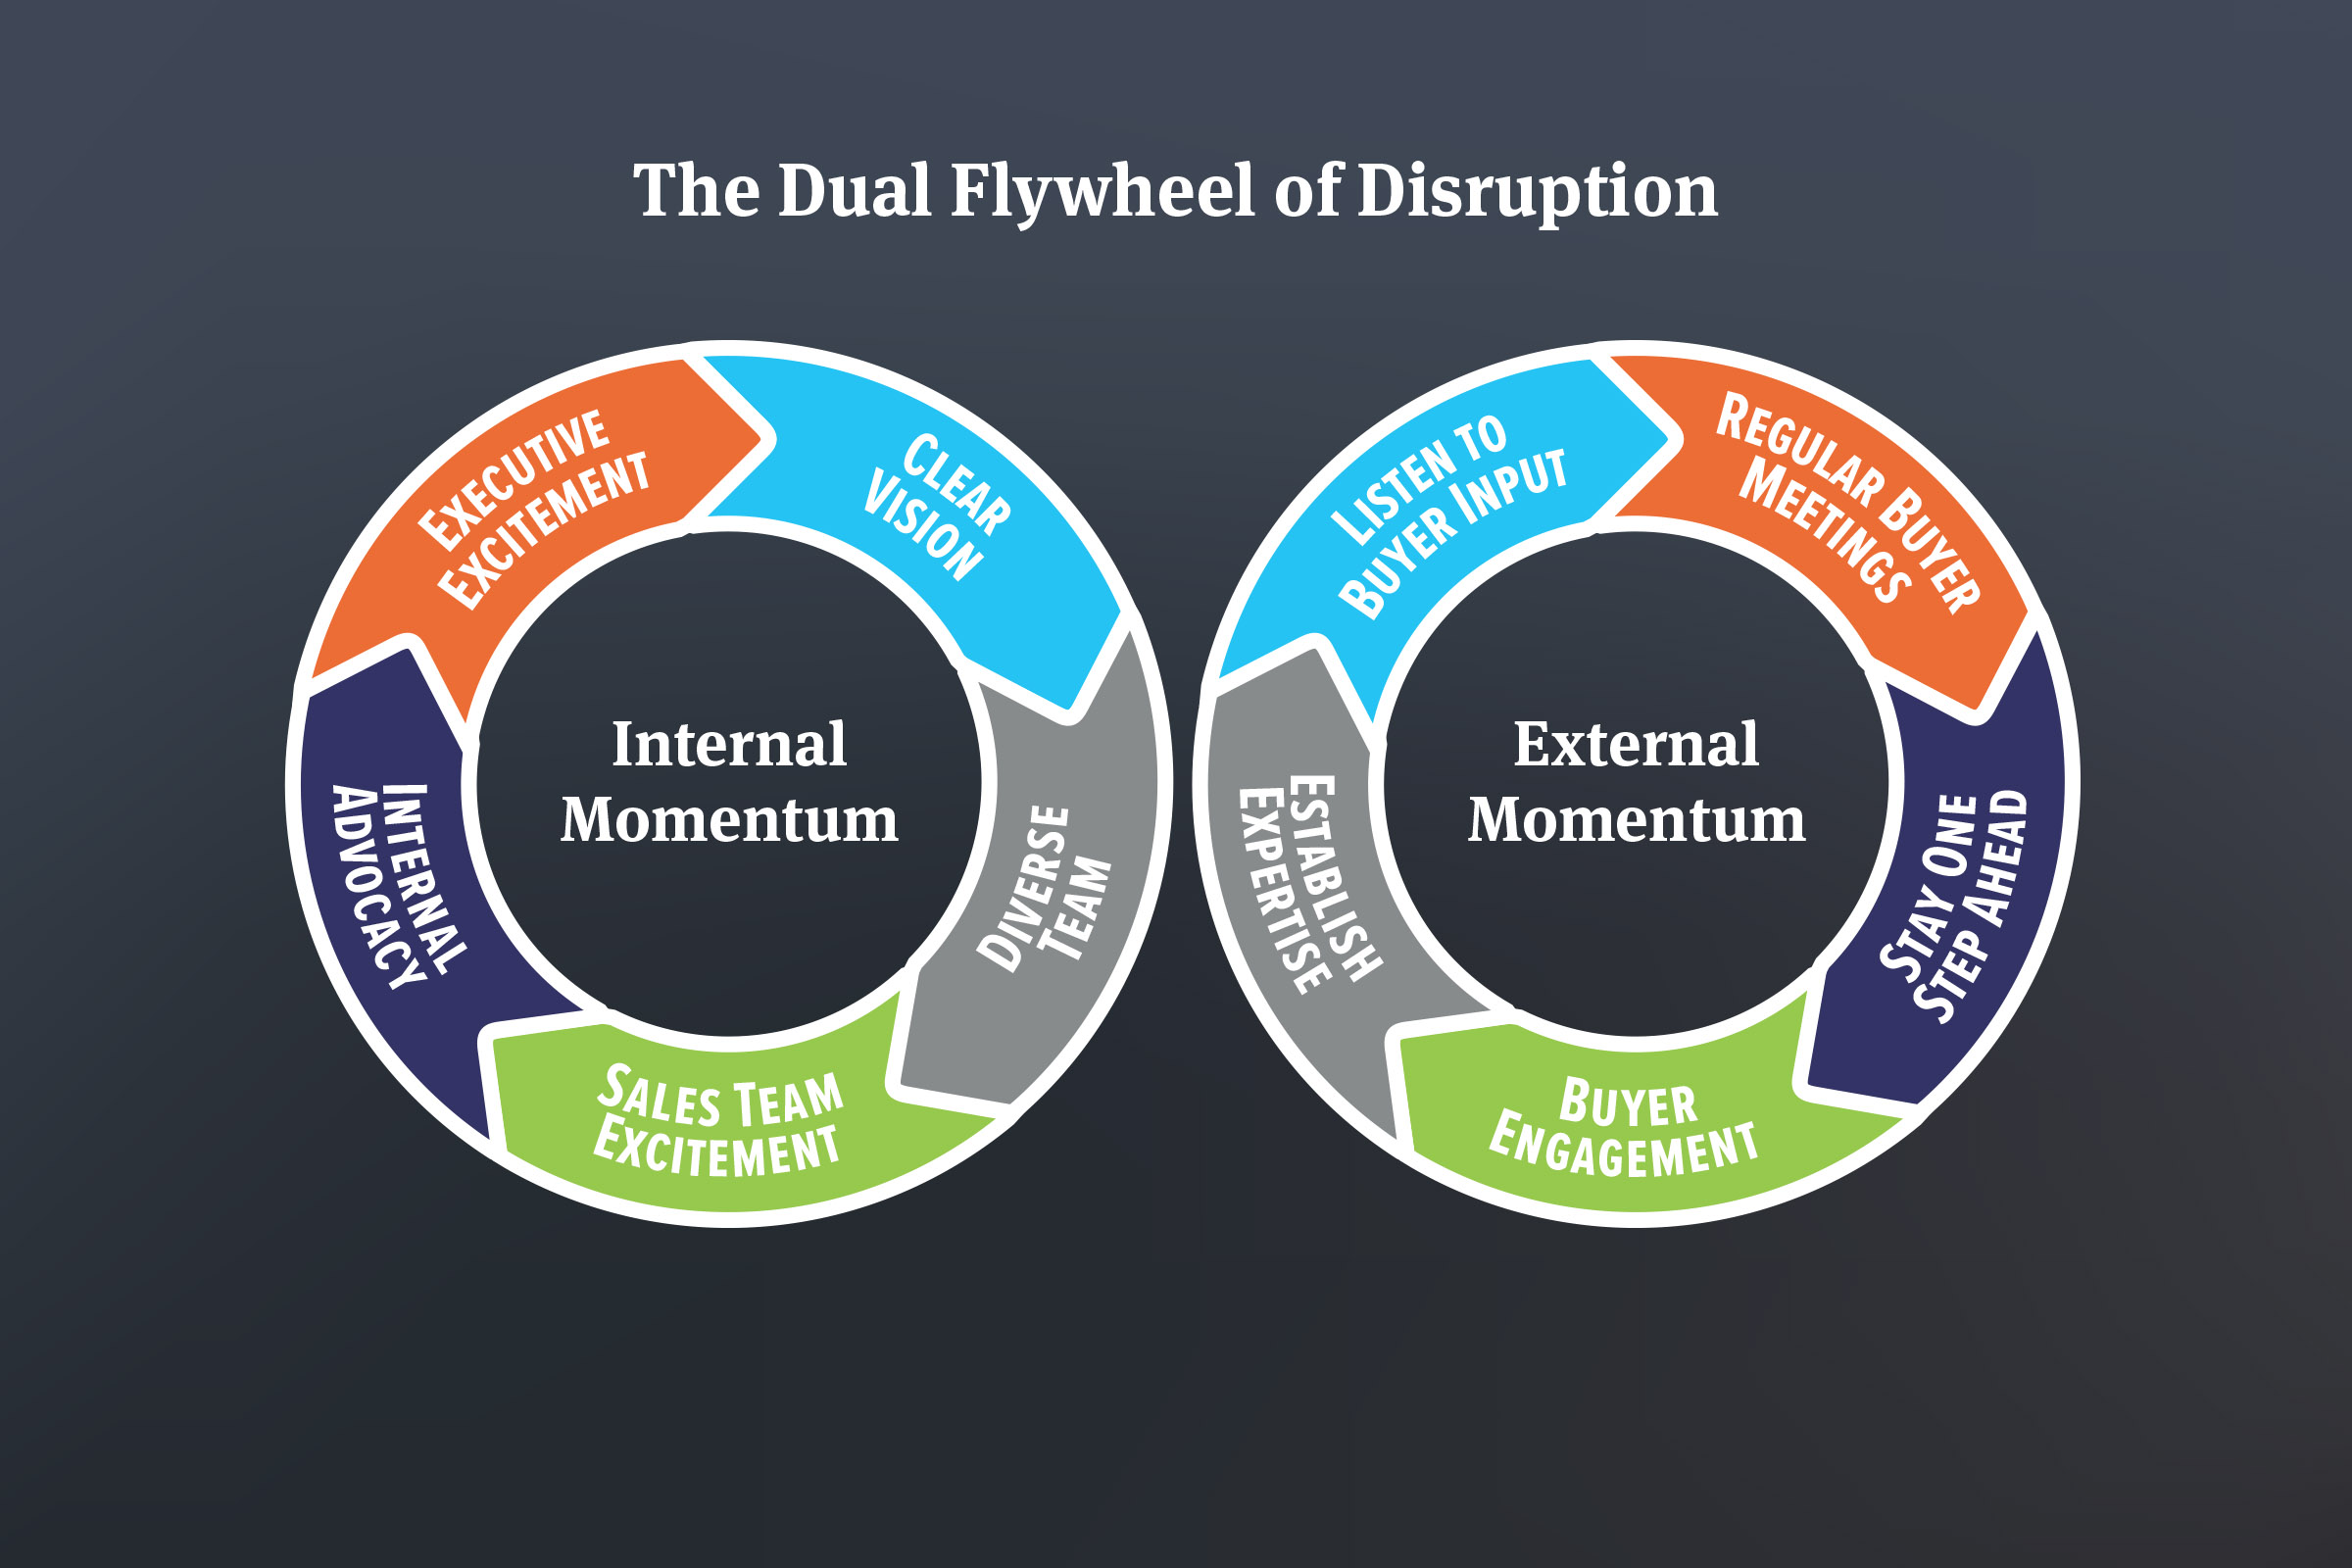 The Dual Flywheel of Disrpution